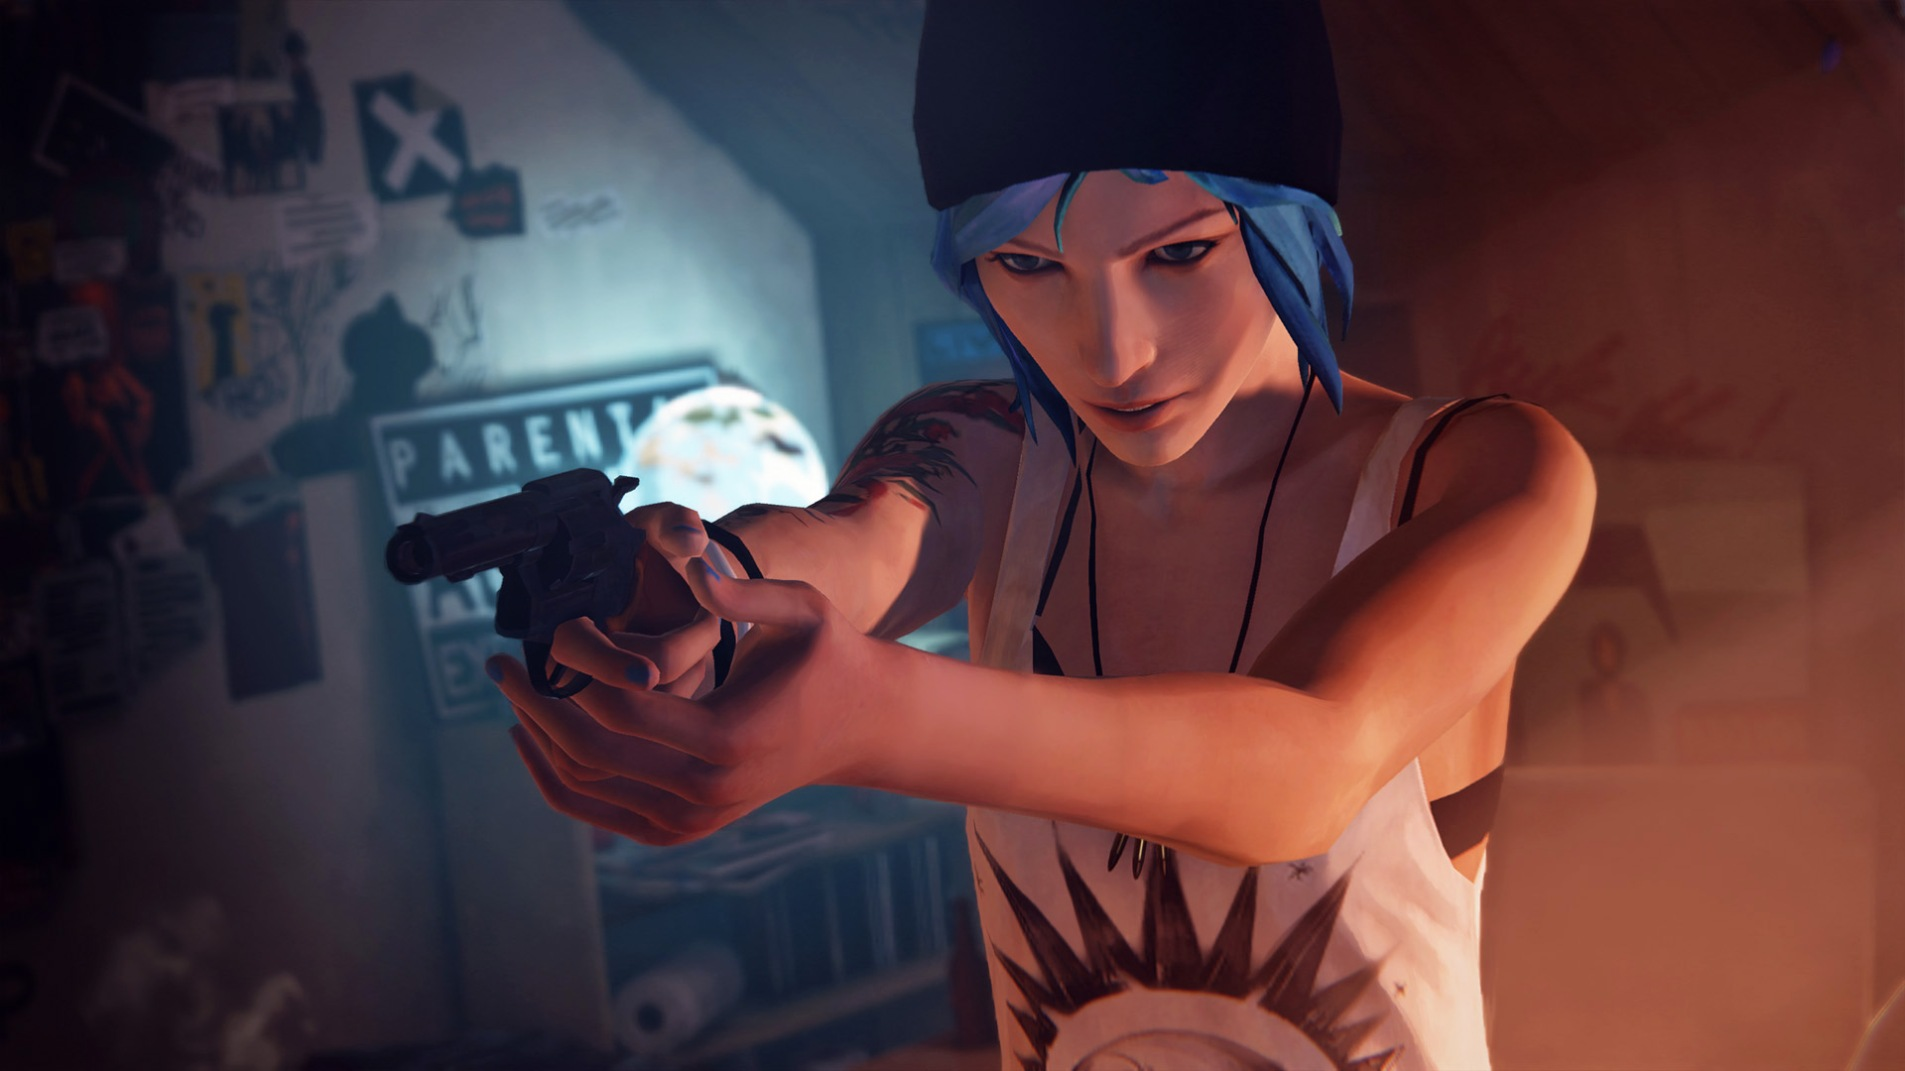 LifeisStrange_screenshot_chloegun_11_1407765874.08.2014_01